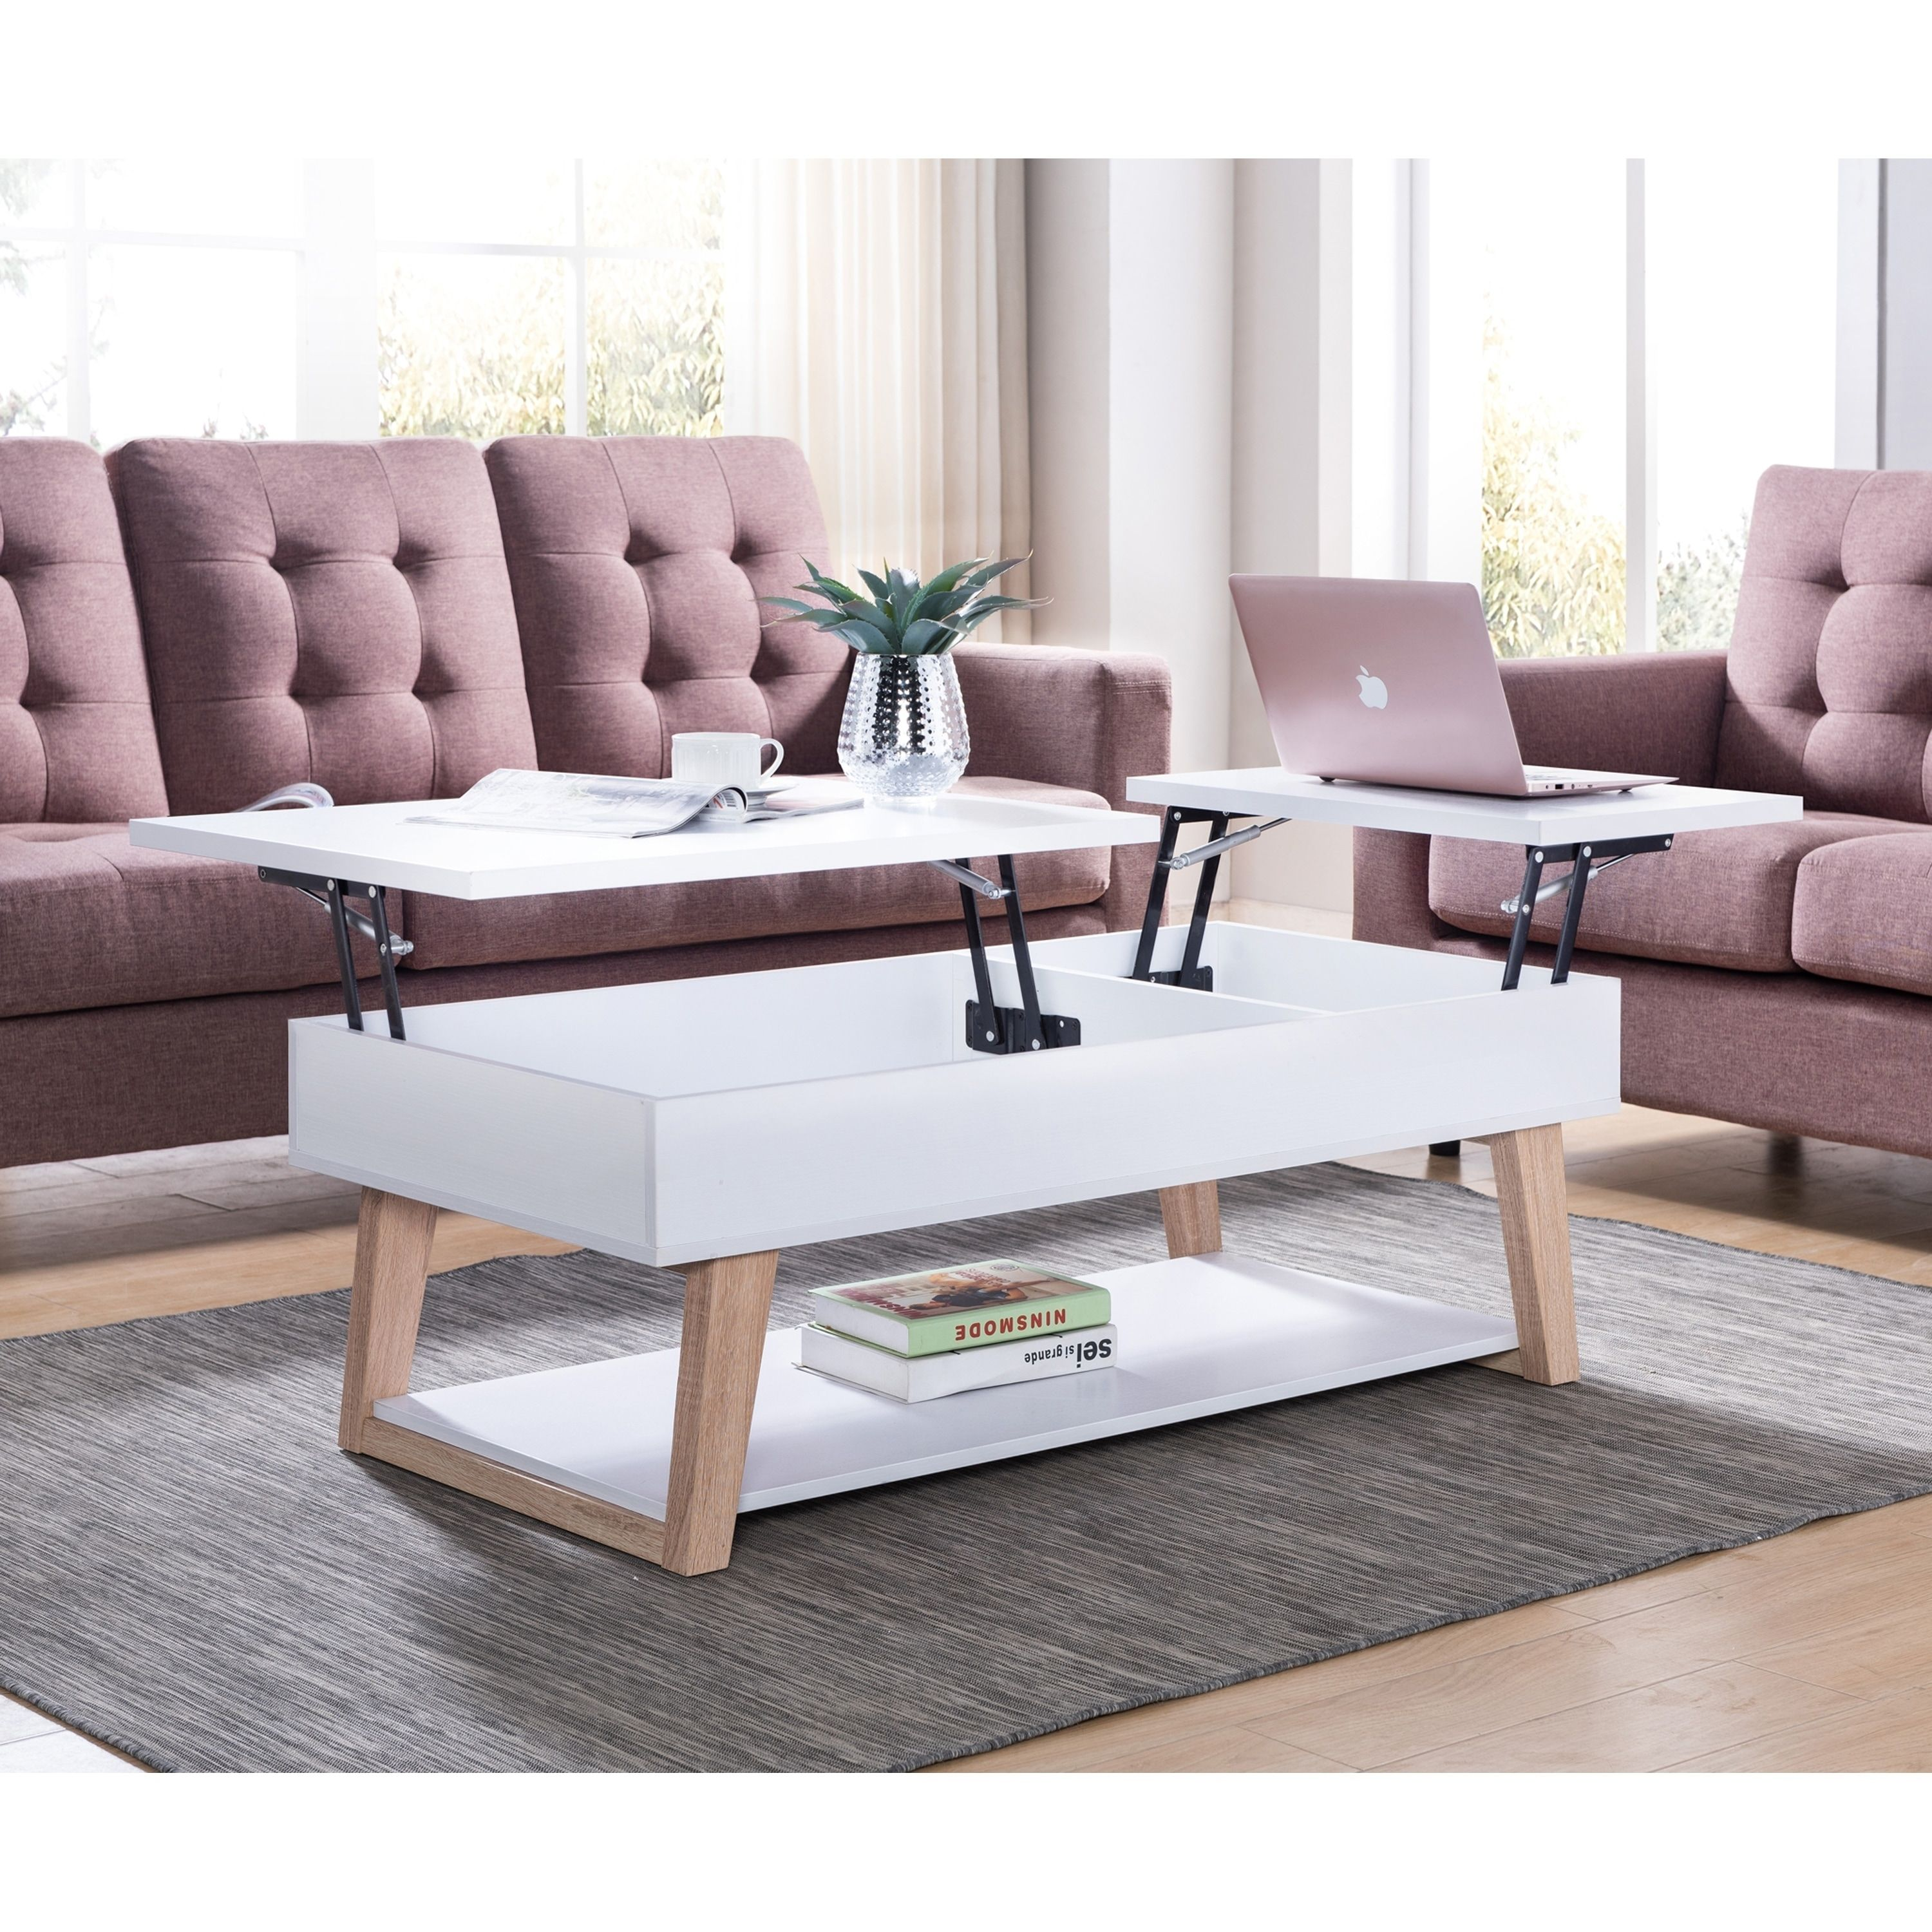 35 Creative Lift Top Coffee Table Ideas Lift Coffee Table